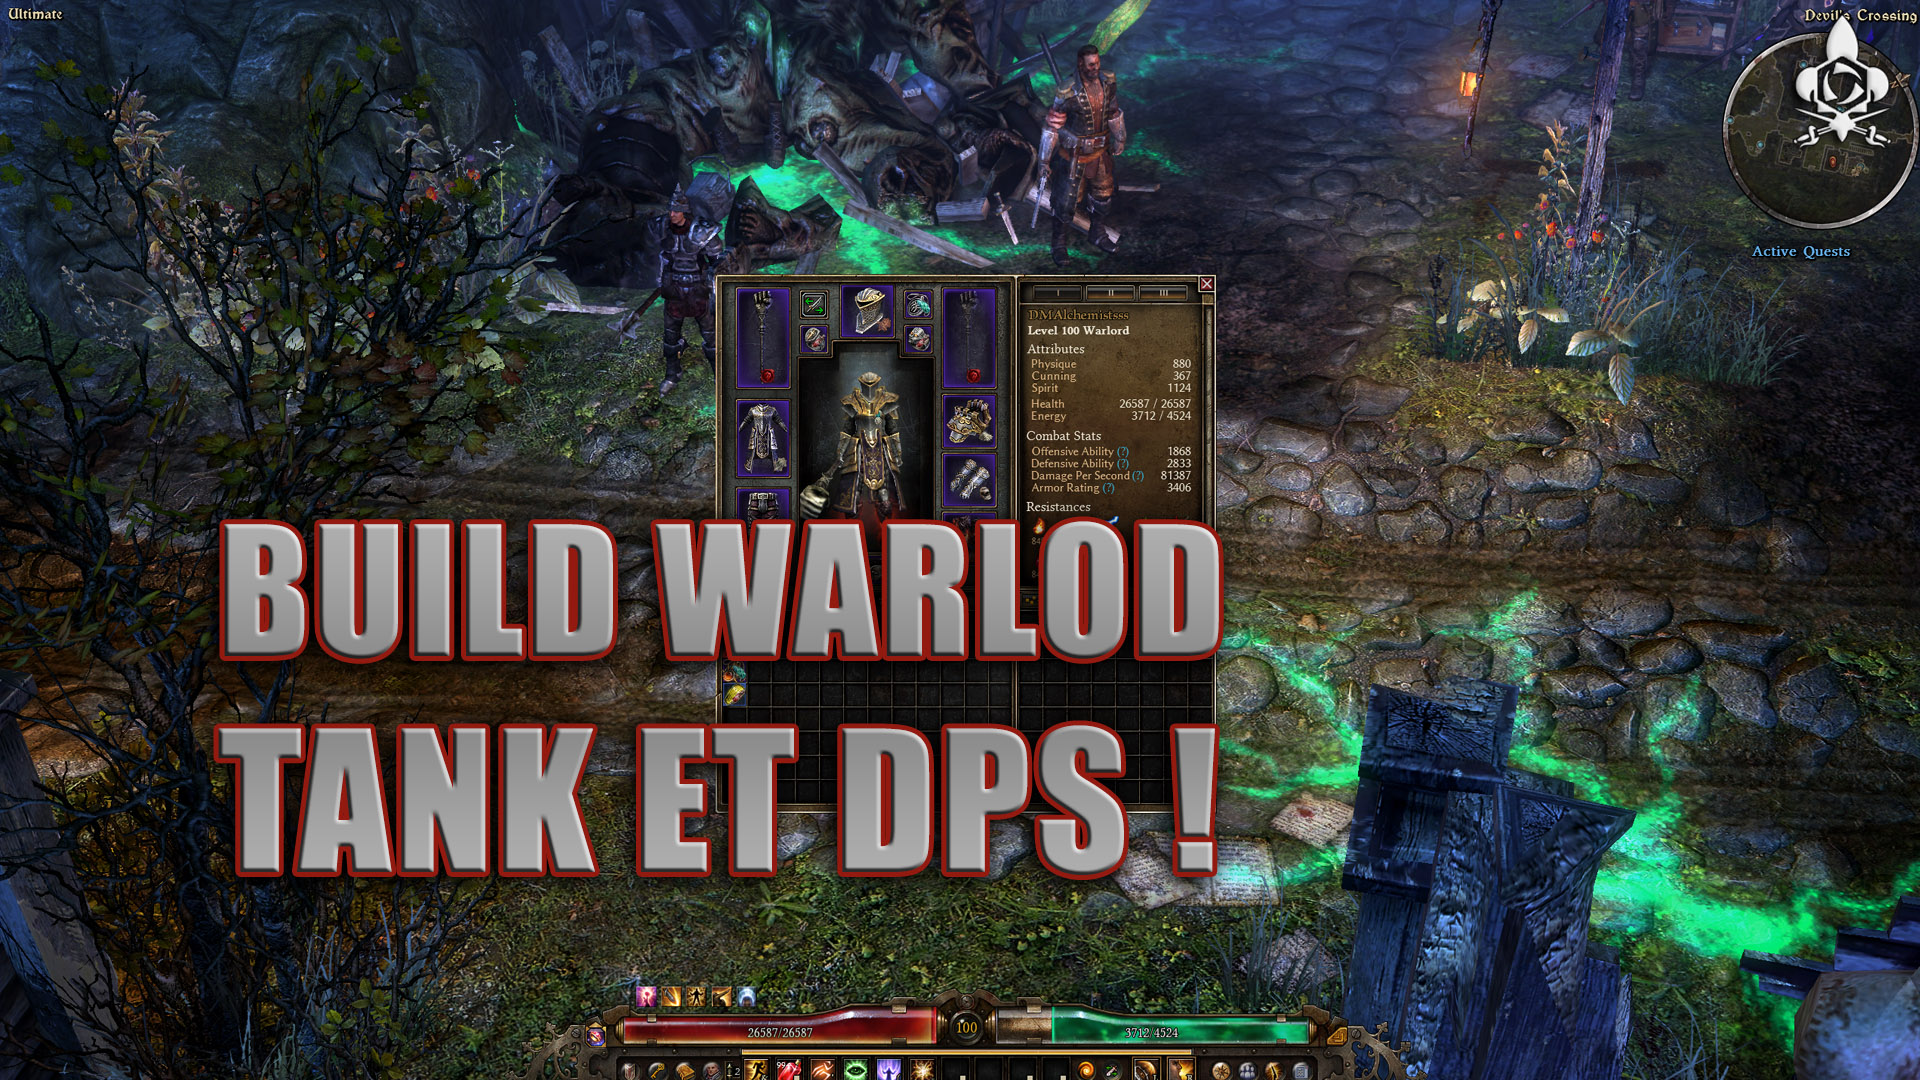 Build Warlord Tank and DPS